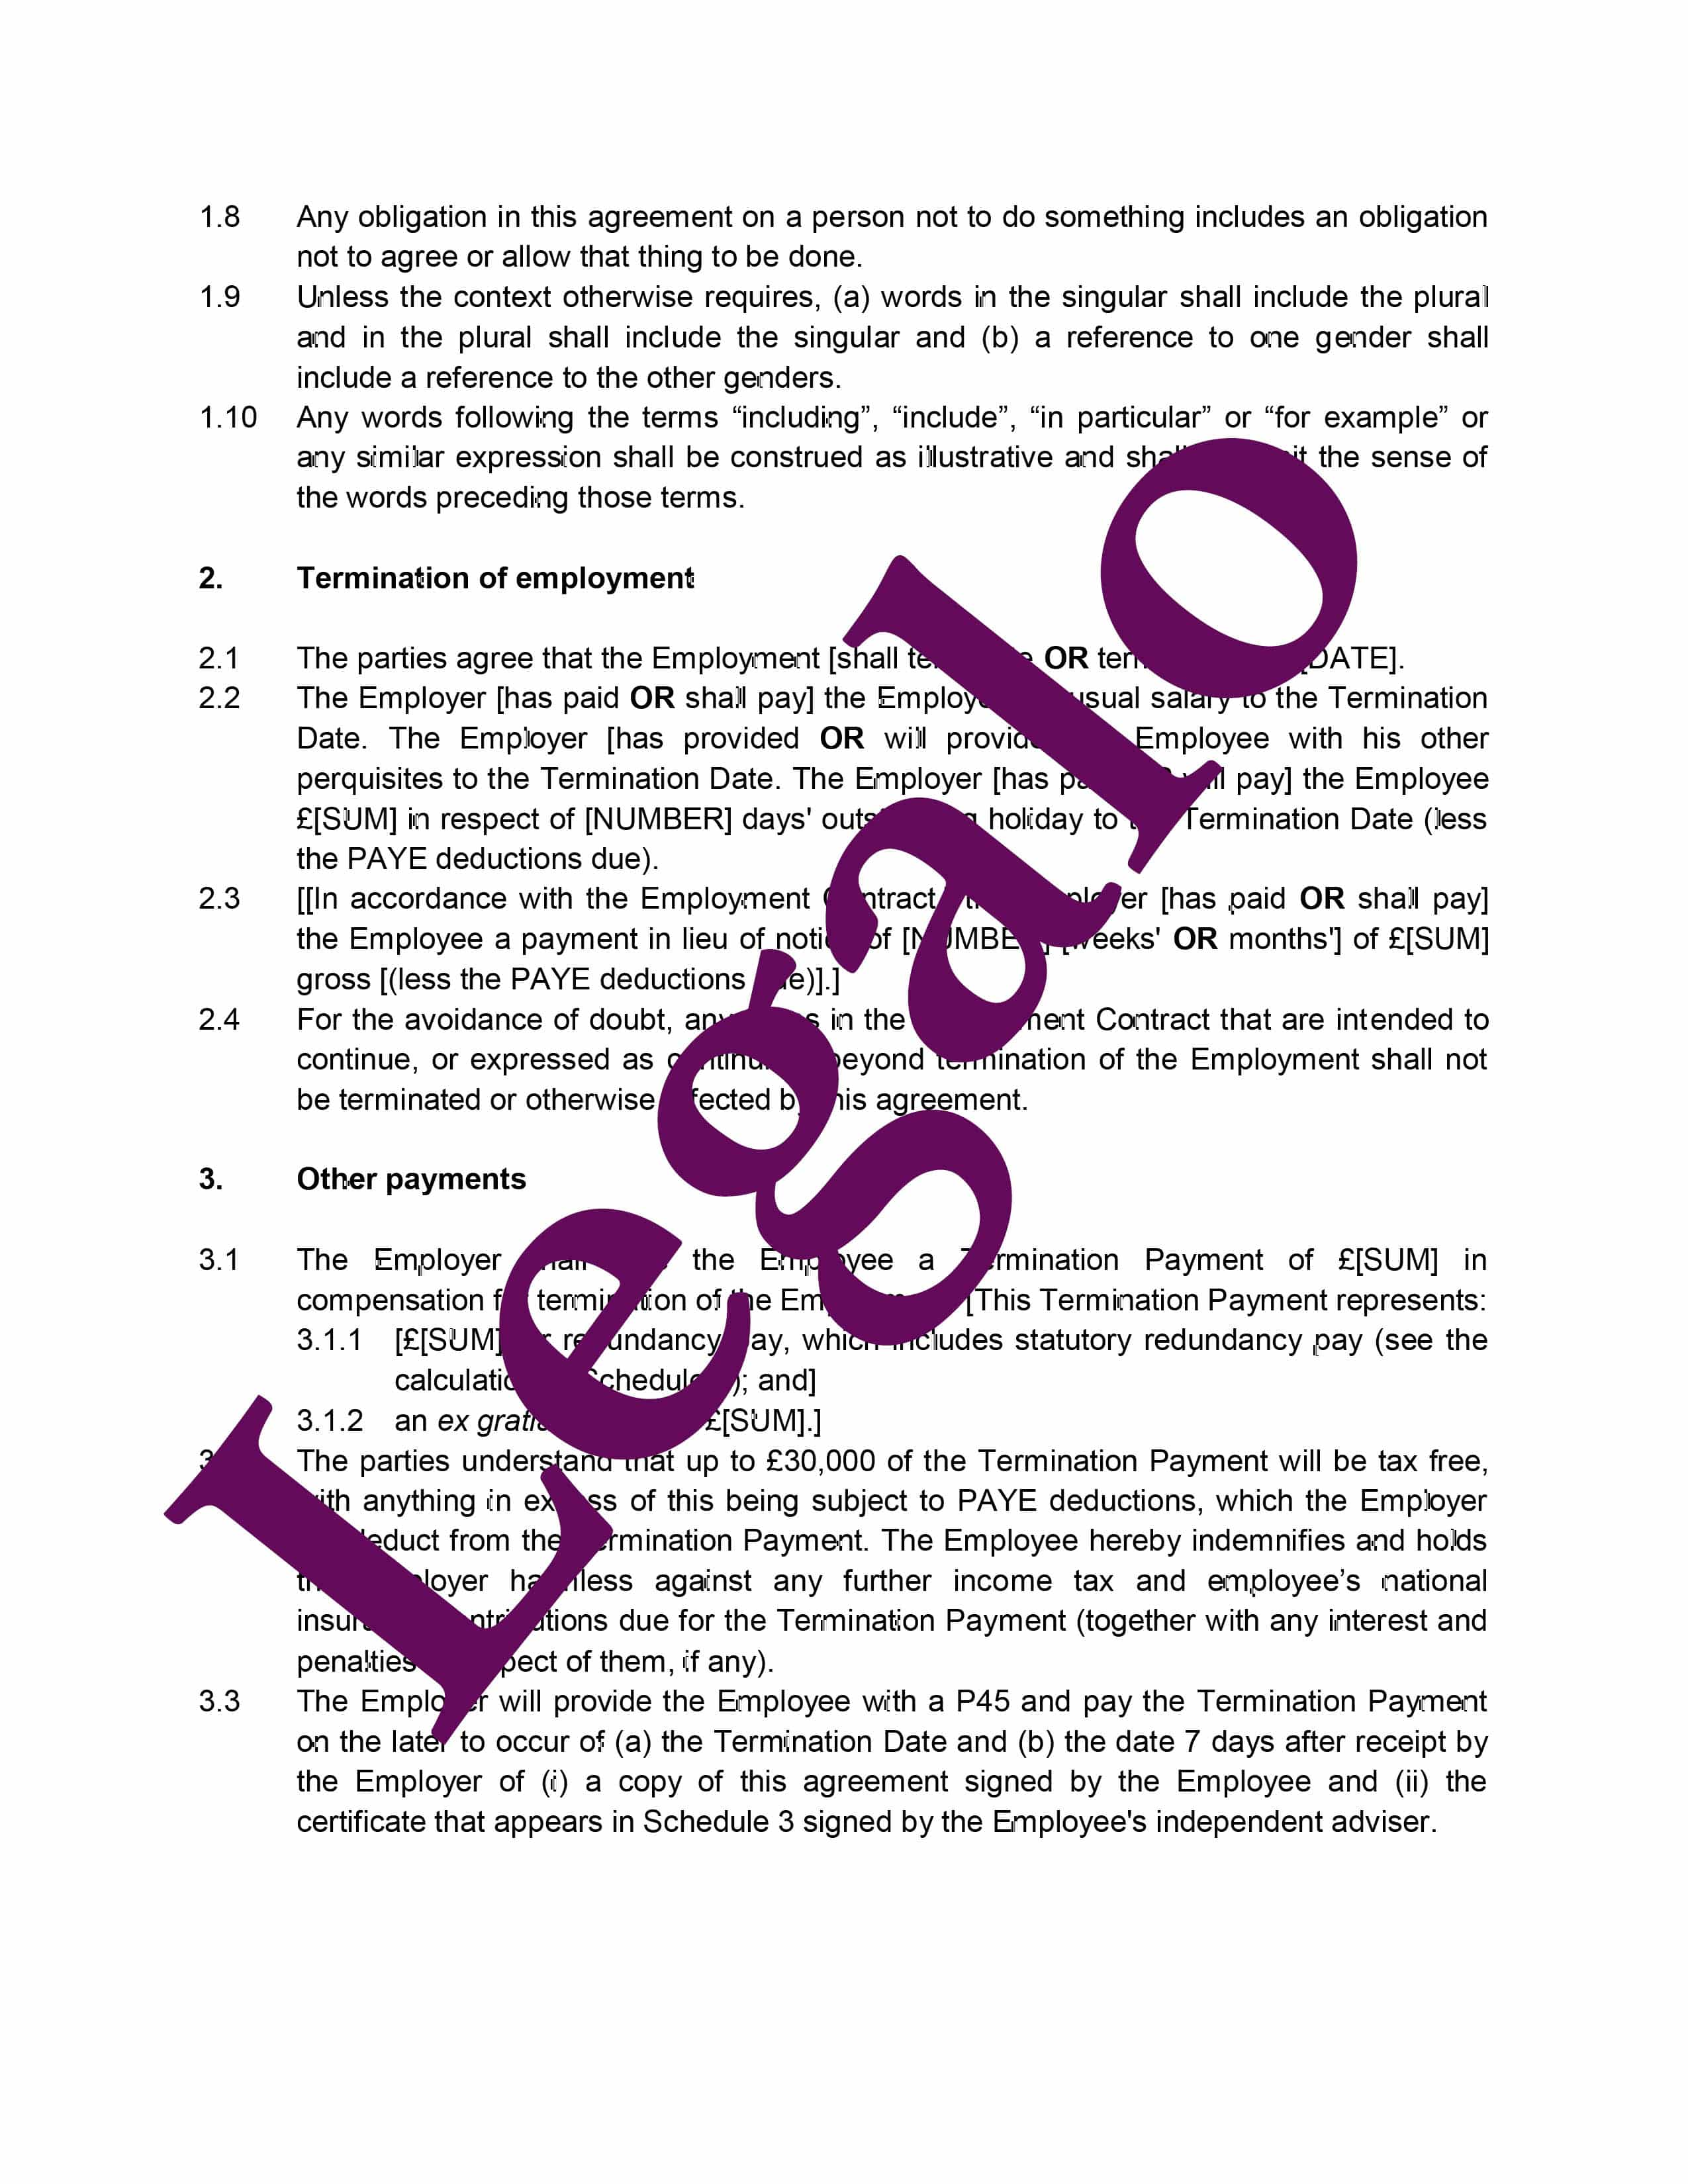 settlement agreement preview image page 2